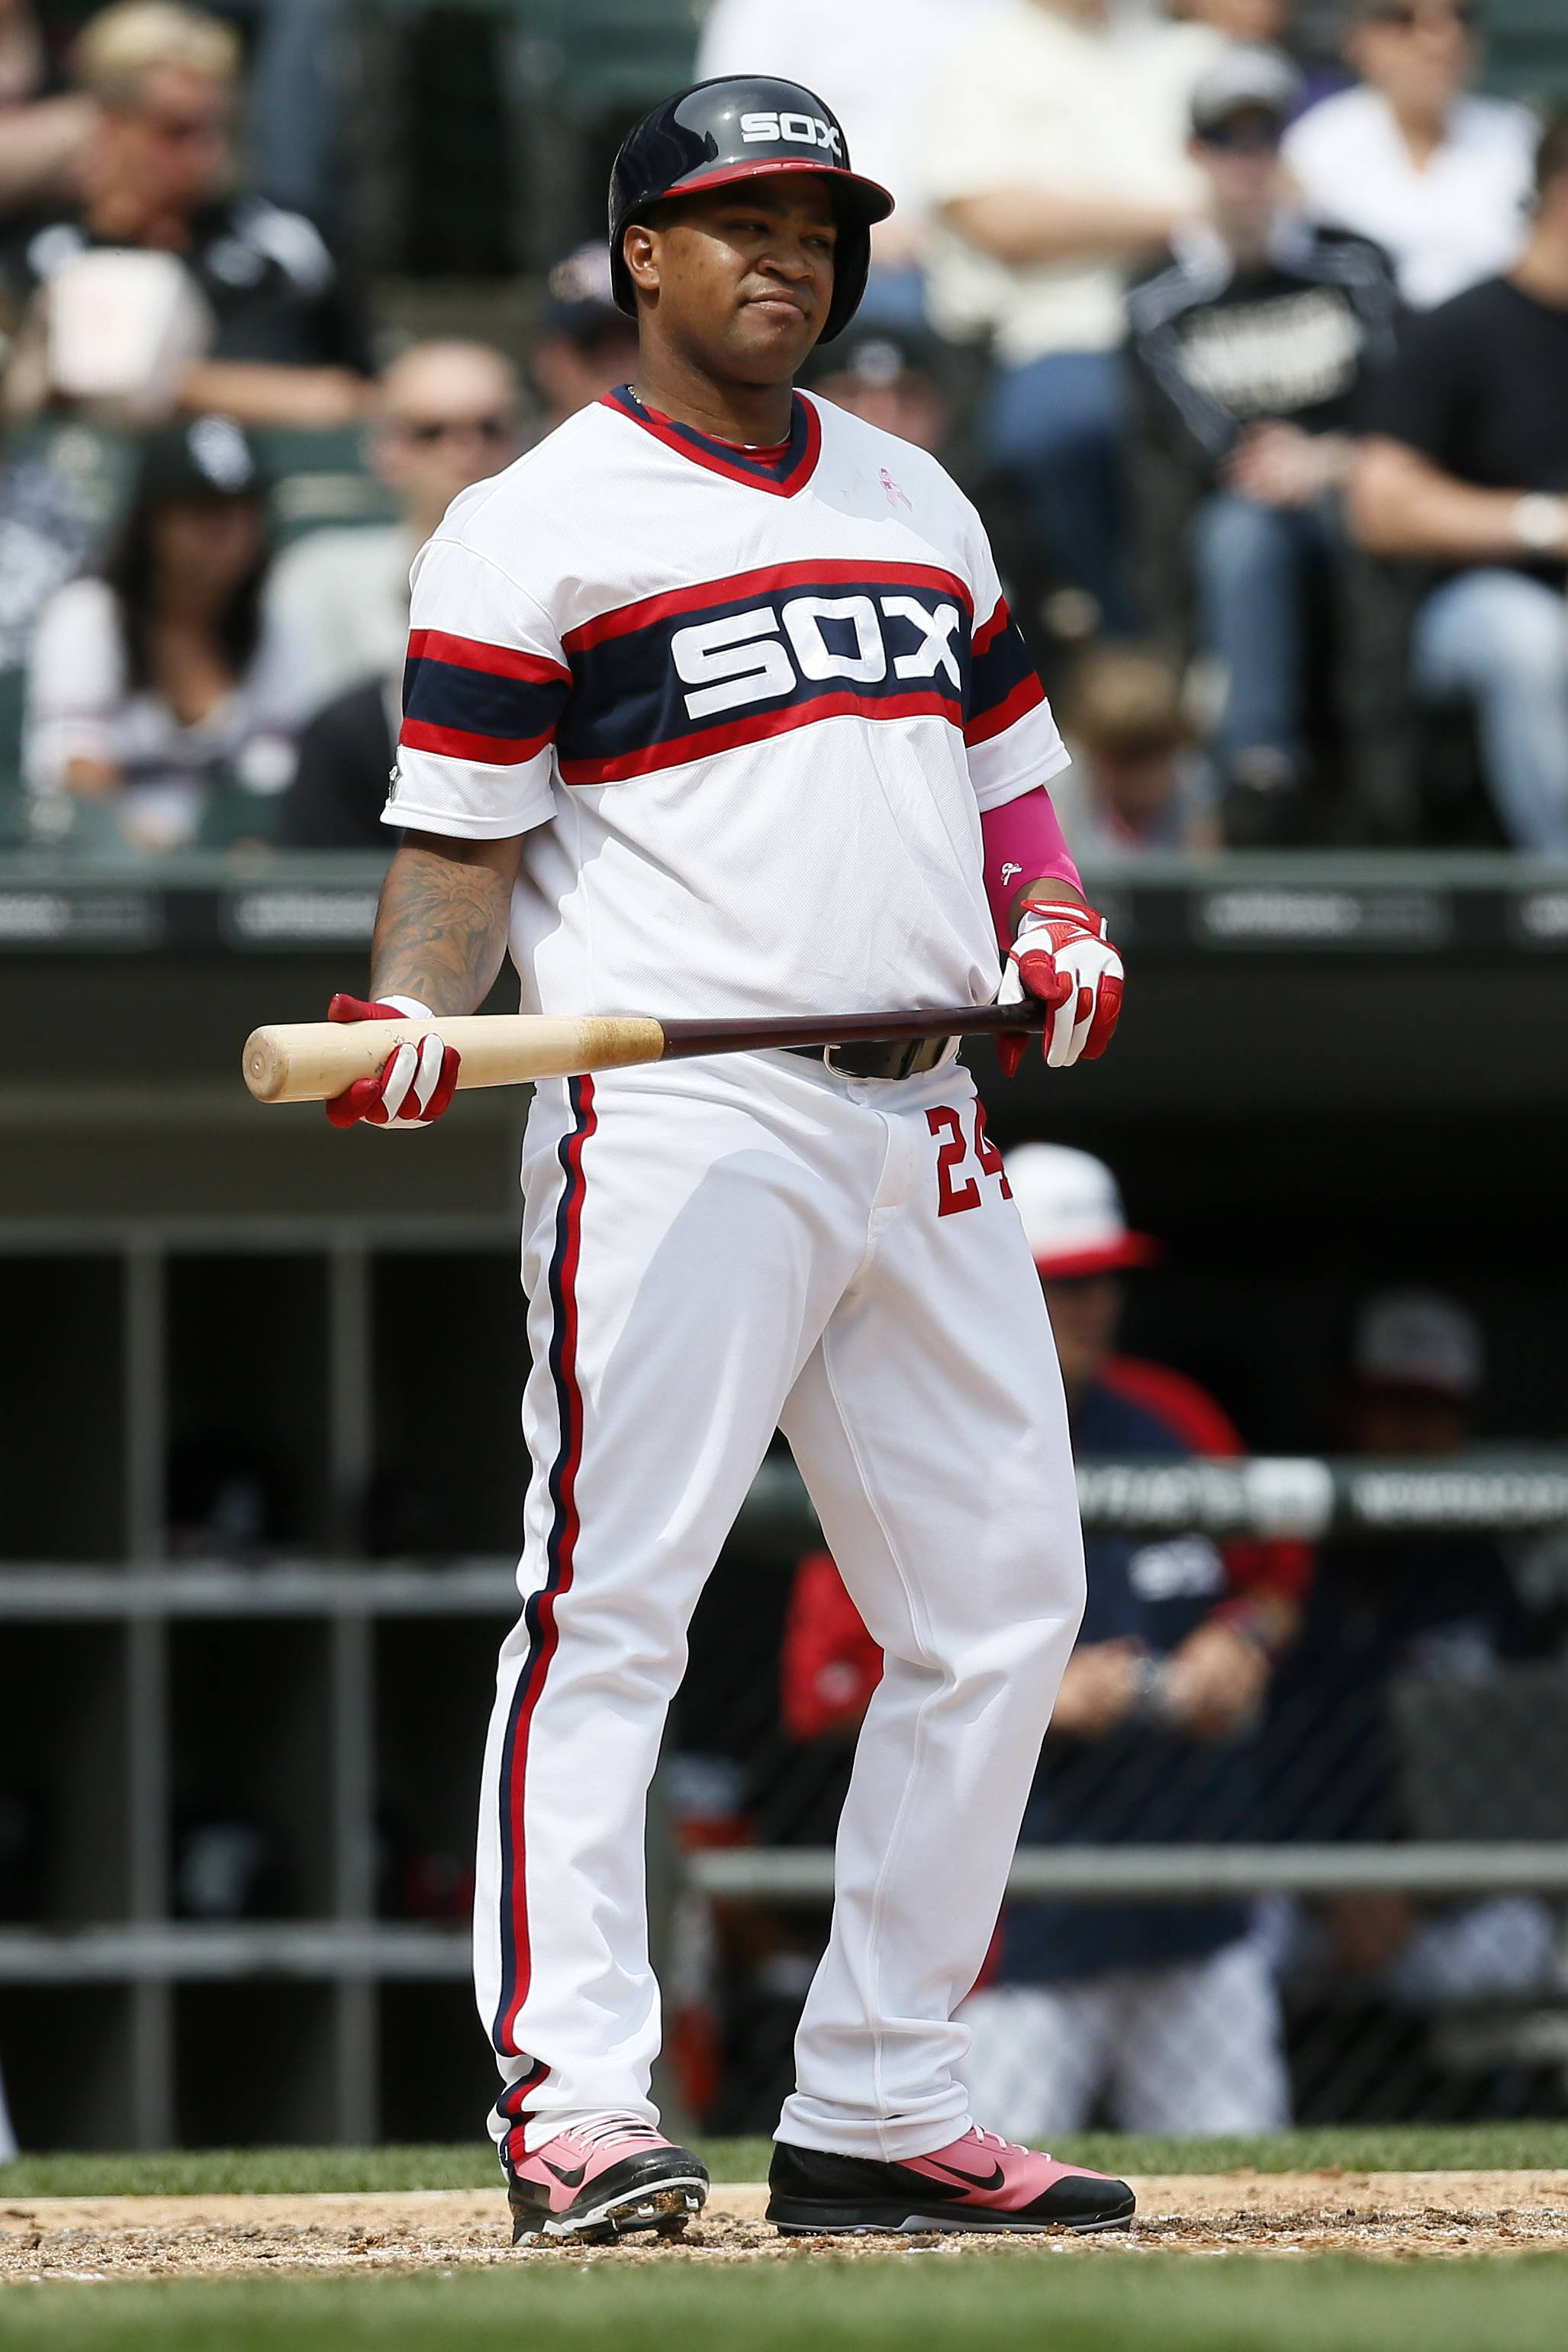 White Sox outfielder Dayan Viciedo reacts to striking out Sunday against Diamondbacks starter Chase Anderson, who was making his major-league debut.